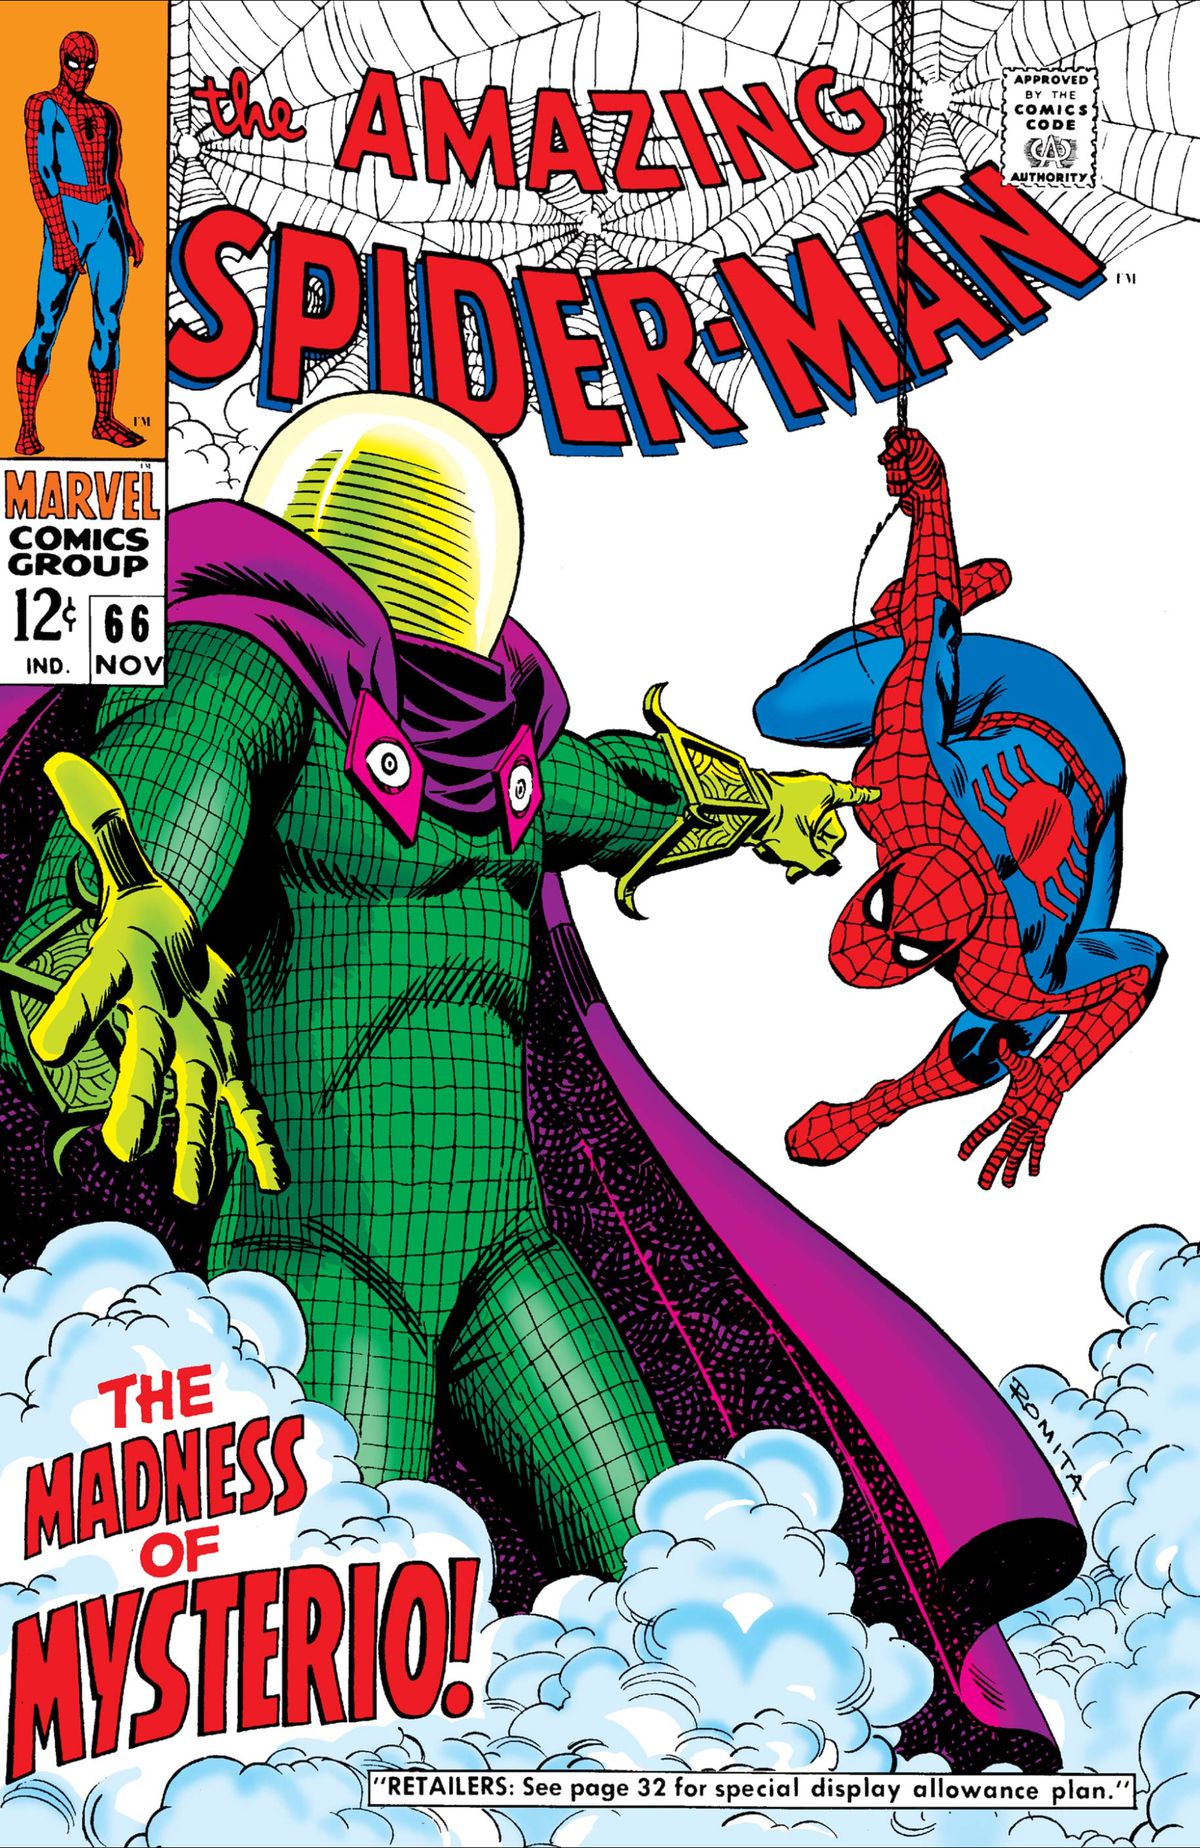 Mysterio and Spider-Man on the cover of Amazing Spider-Man #66, Marvel Comics (1968).